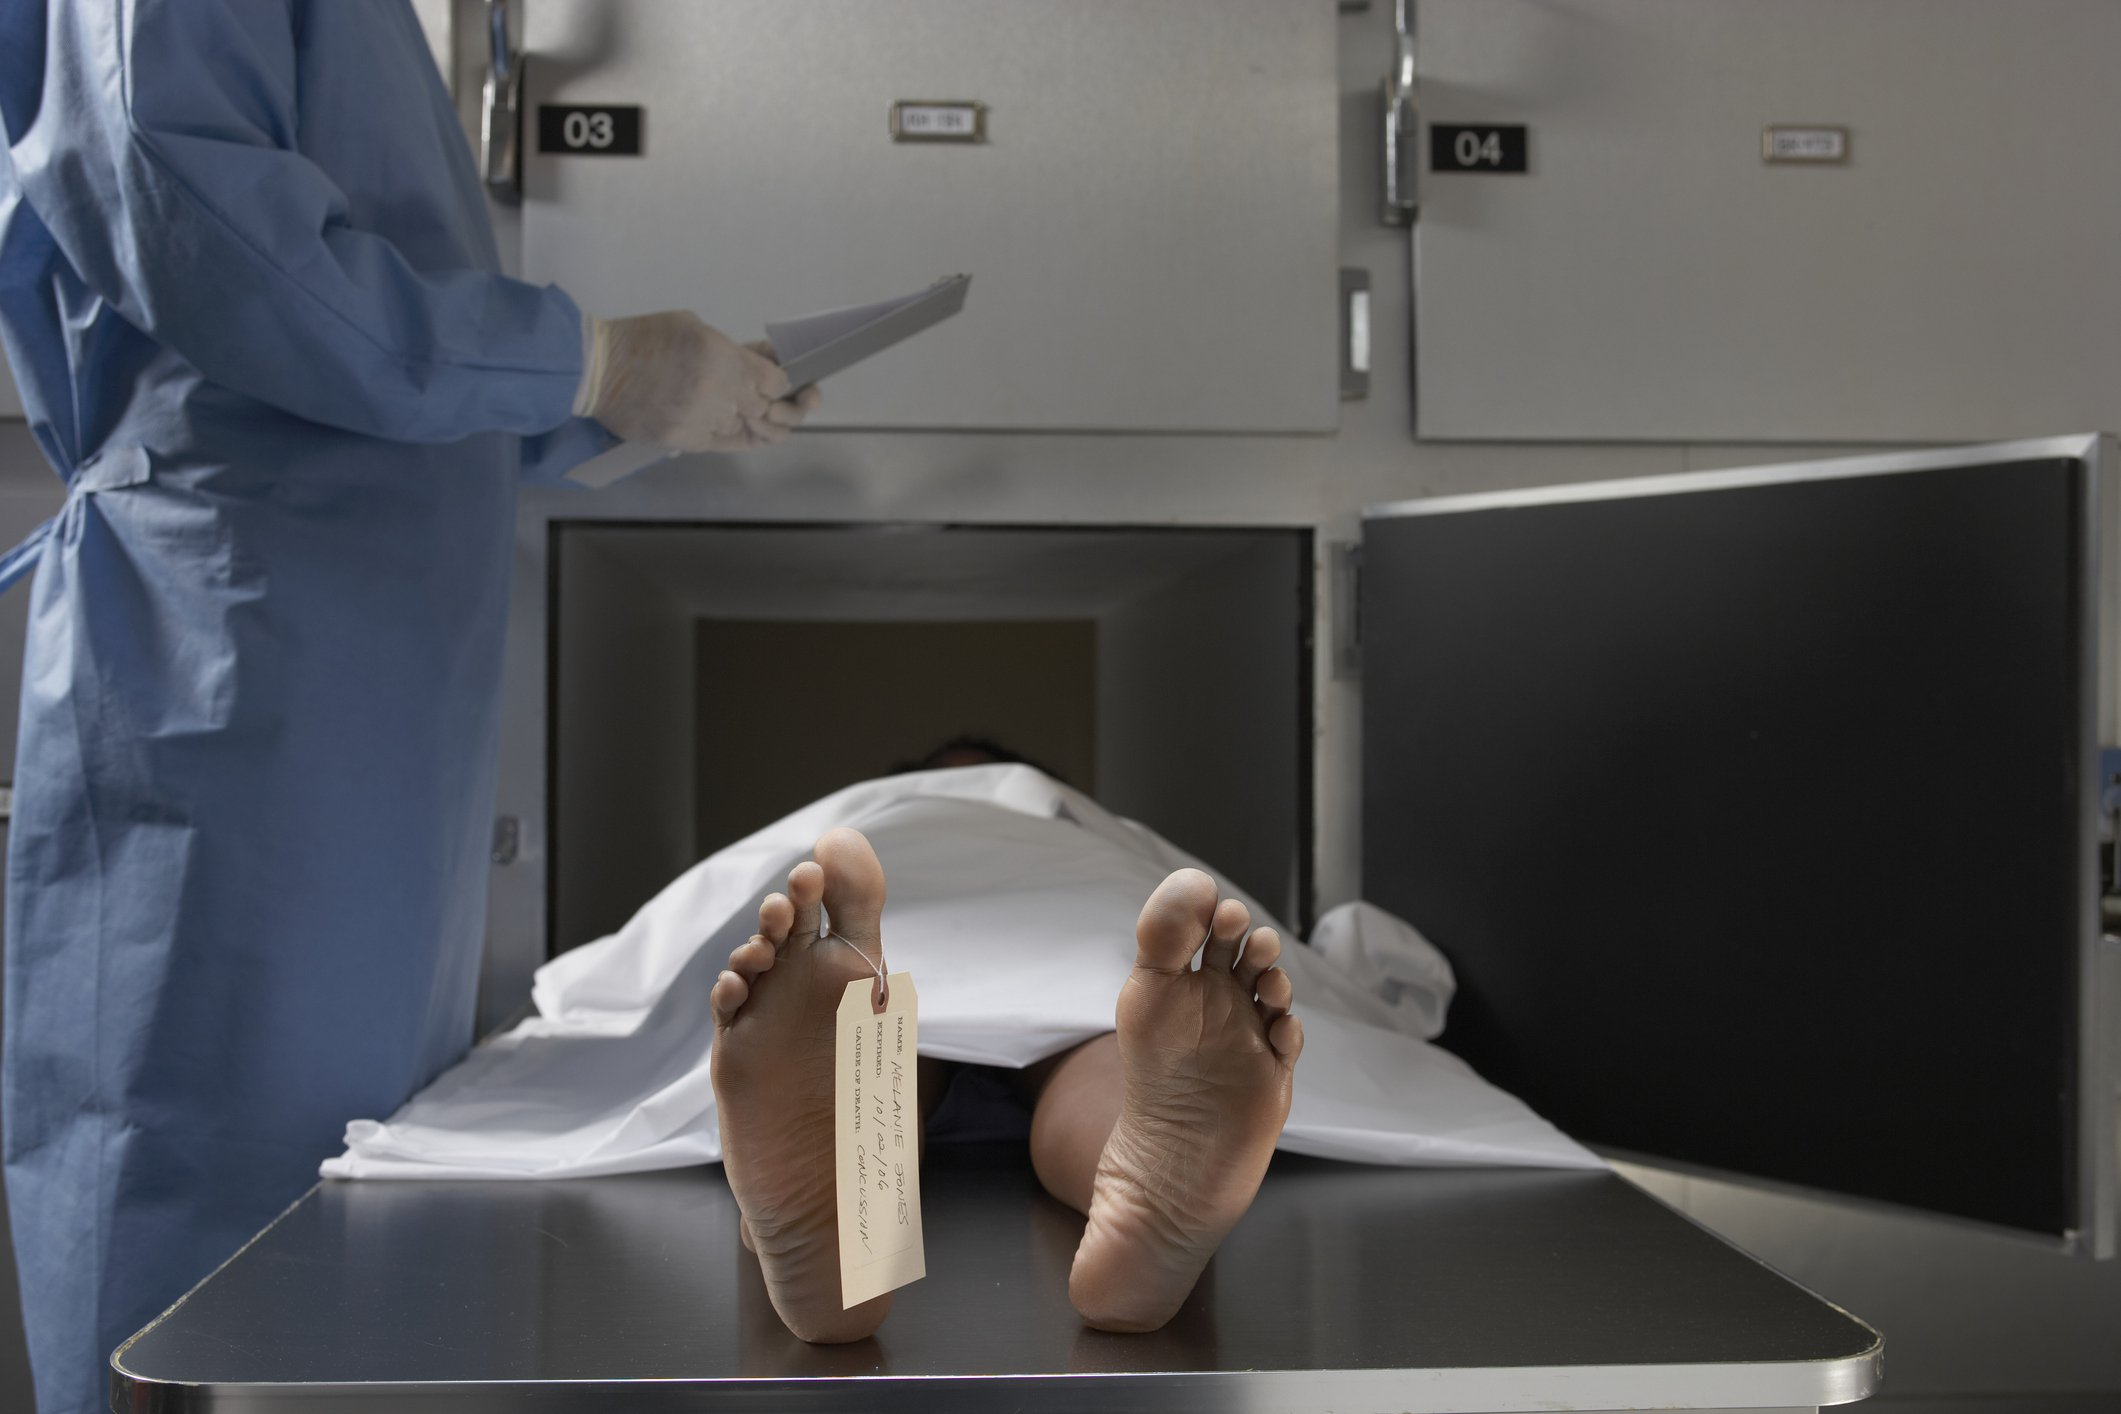 Scientist explains why life after death 'is impossible'